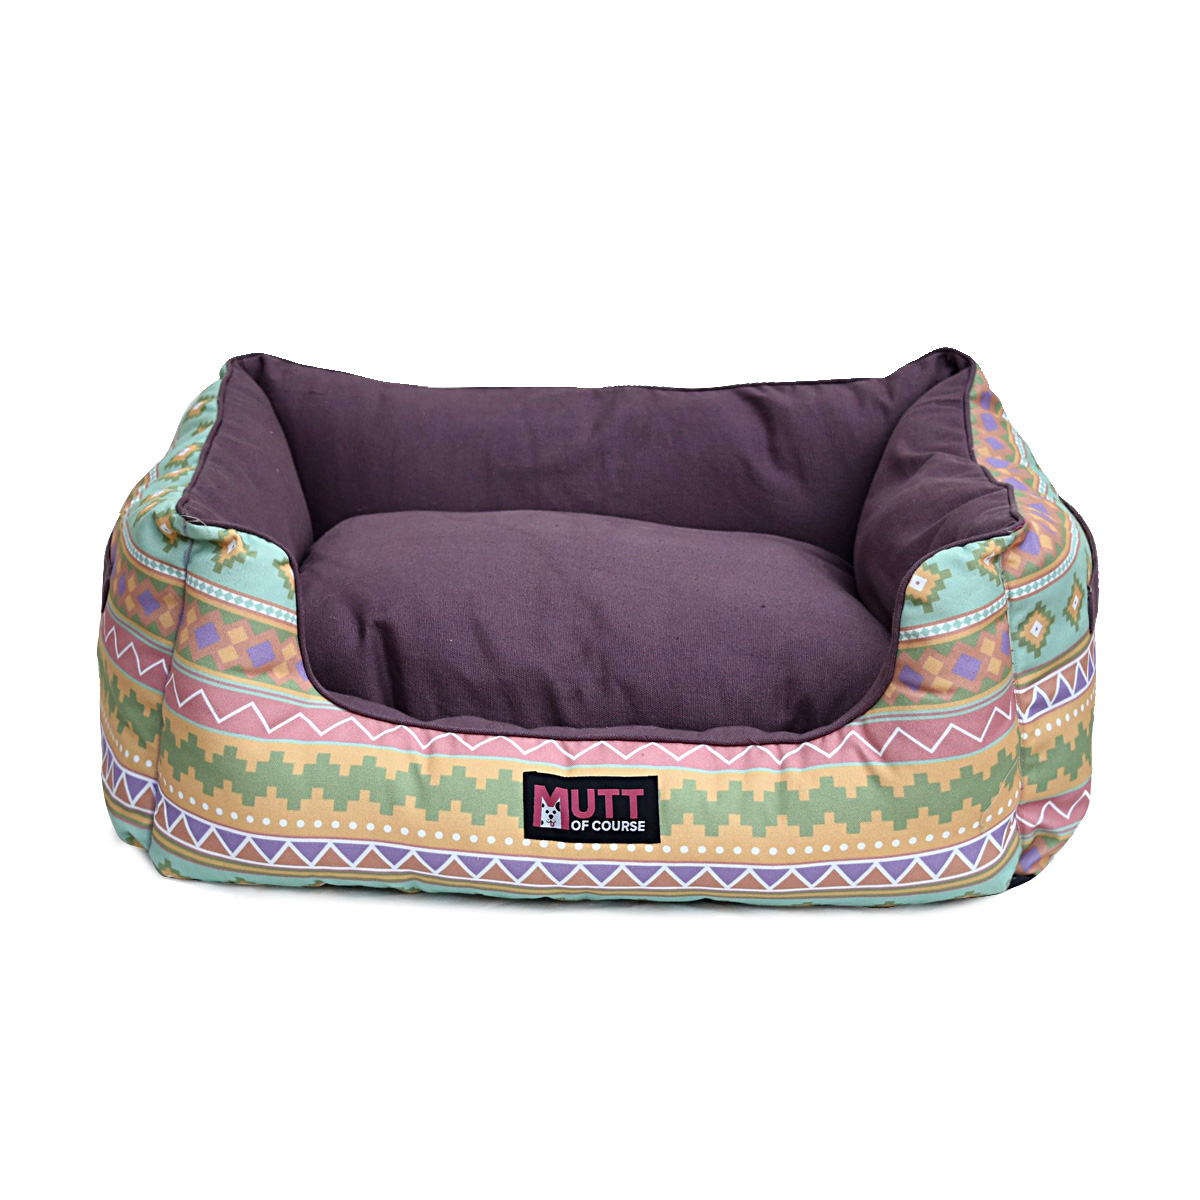 Mutt Of Course Lounger Bed For Dogs - Aztec Printe  - Large